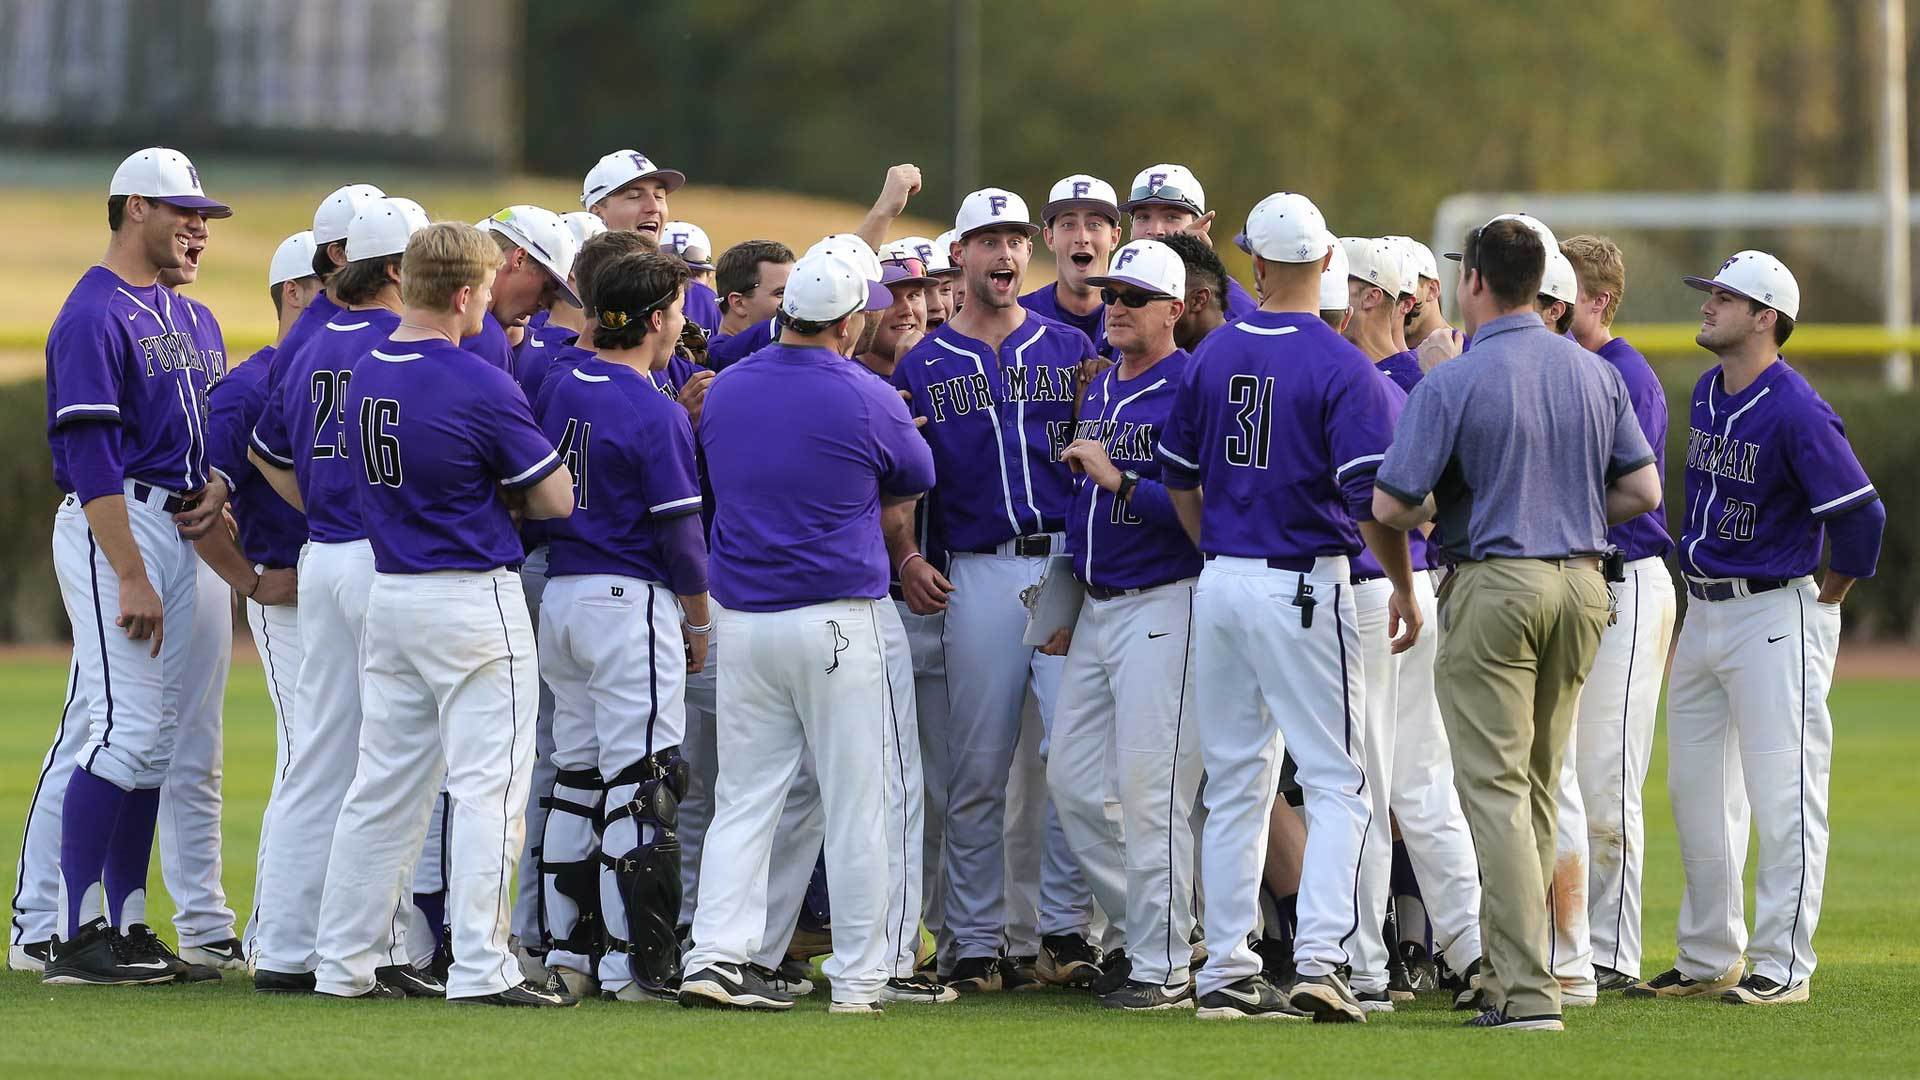 Furman Baseball (size: funews-syndication)